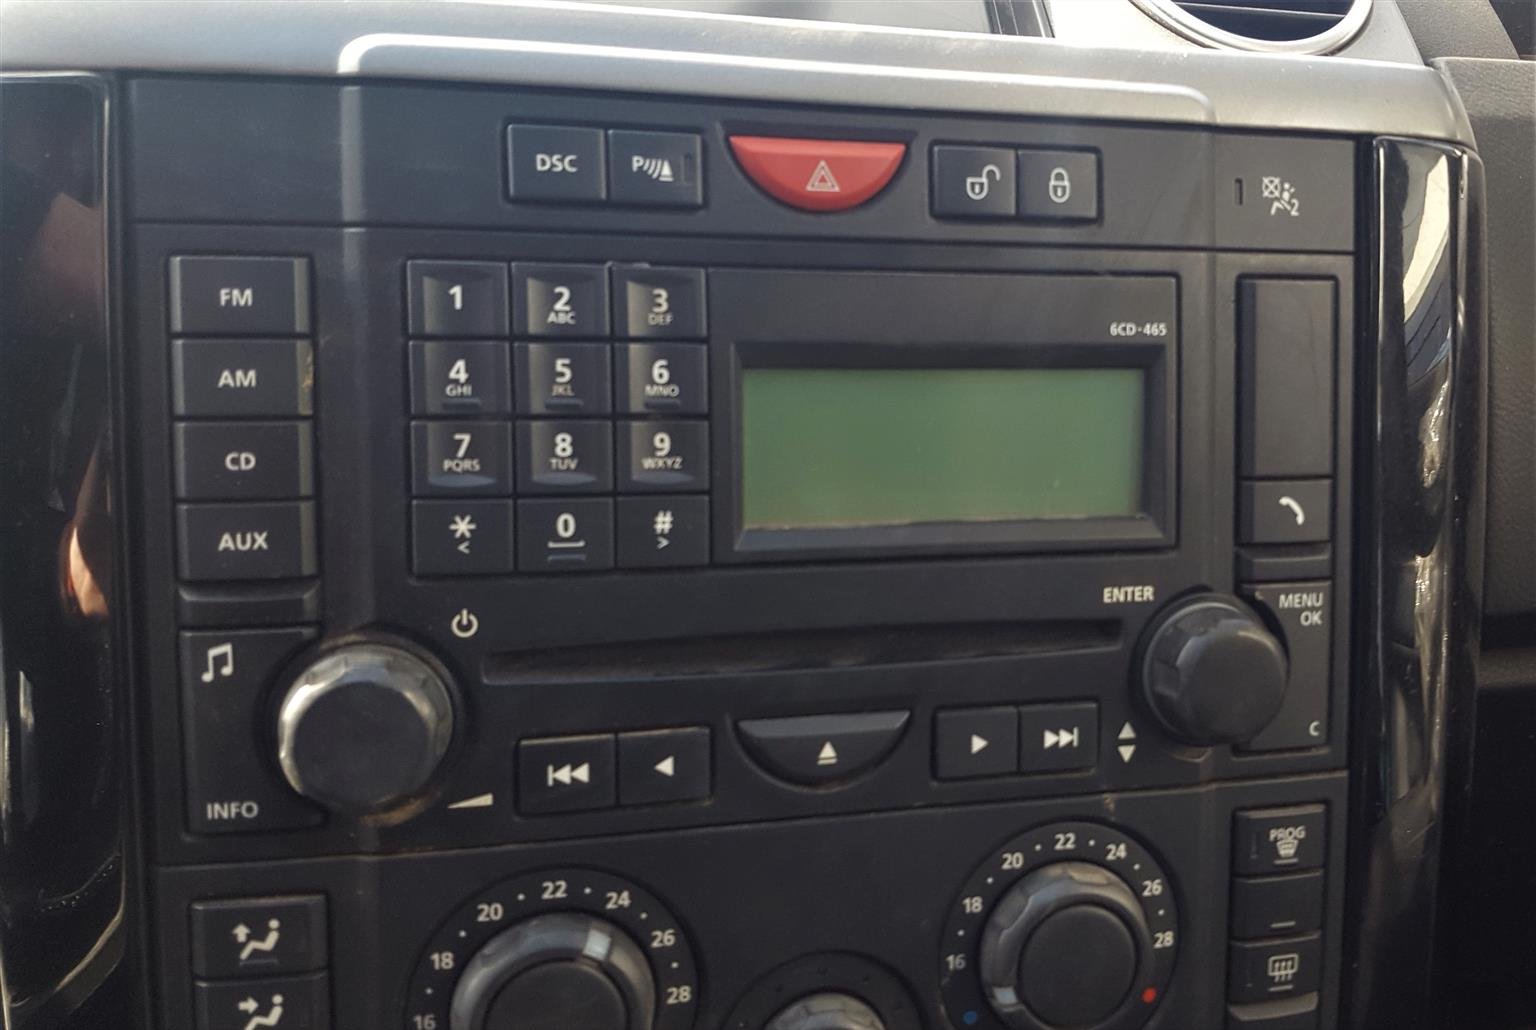 Land Rover Discovery 3 Radio | FOR SALE